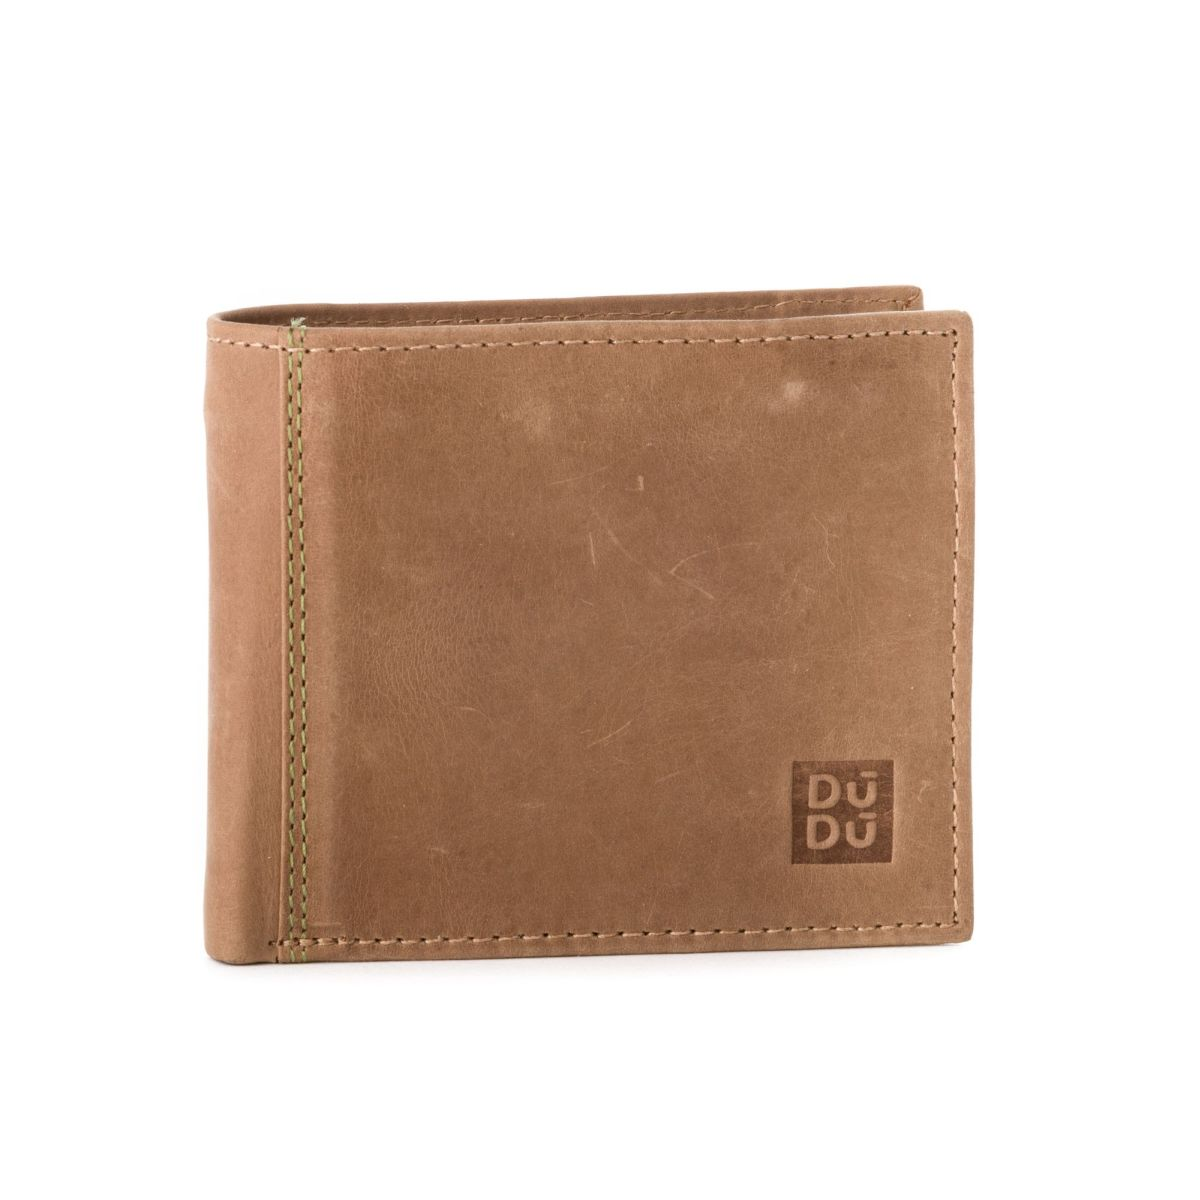 DuDu Mans vintage leather wallet - Tan